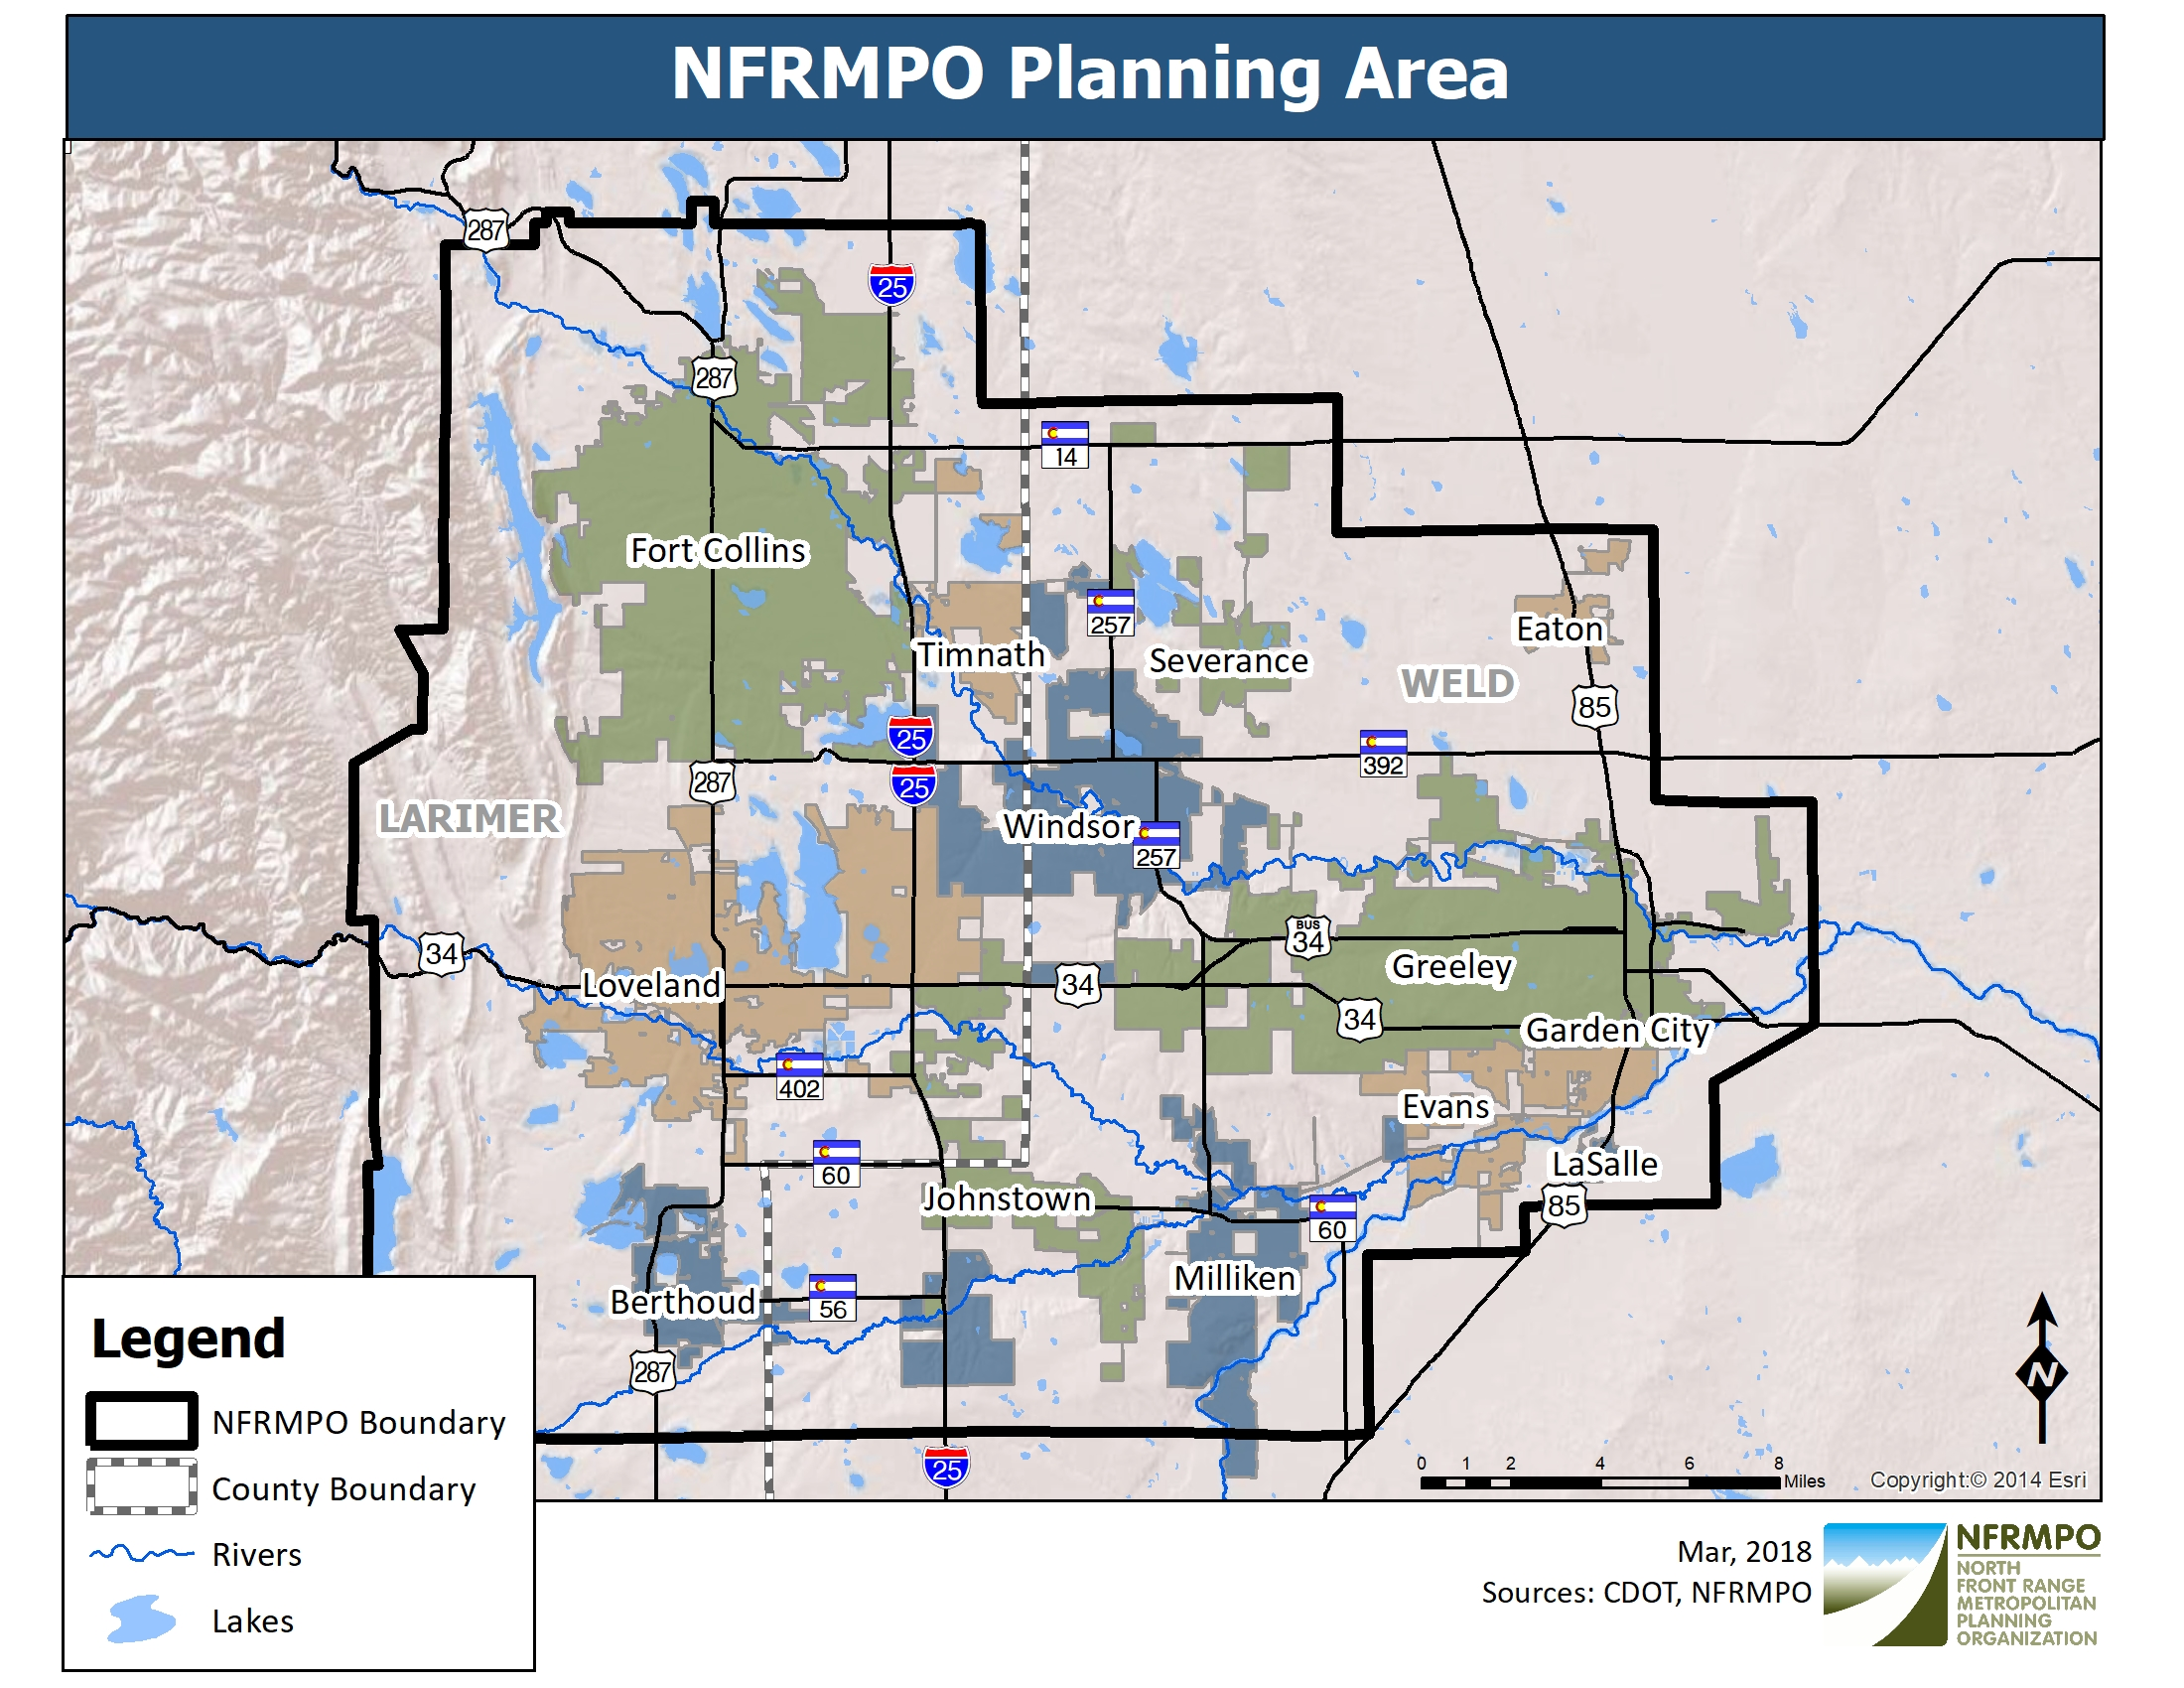 NFRMPO Planning Boundary Area